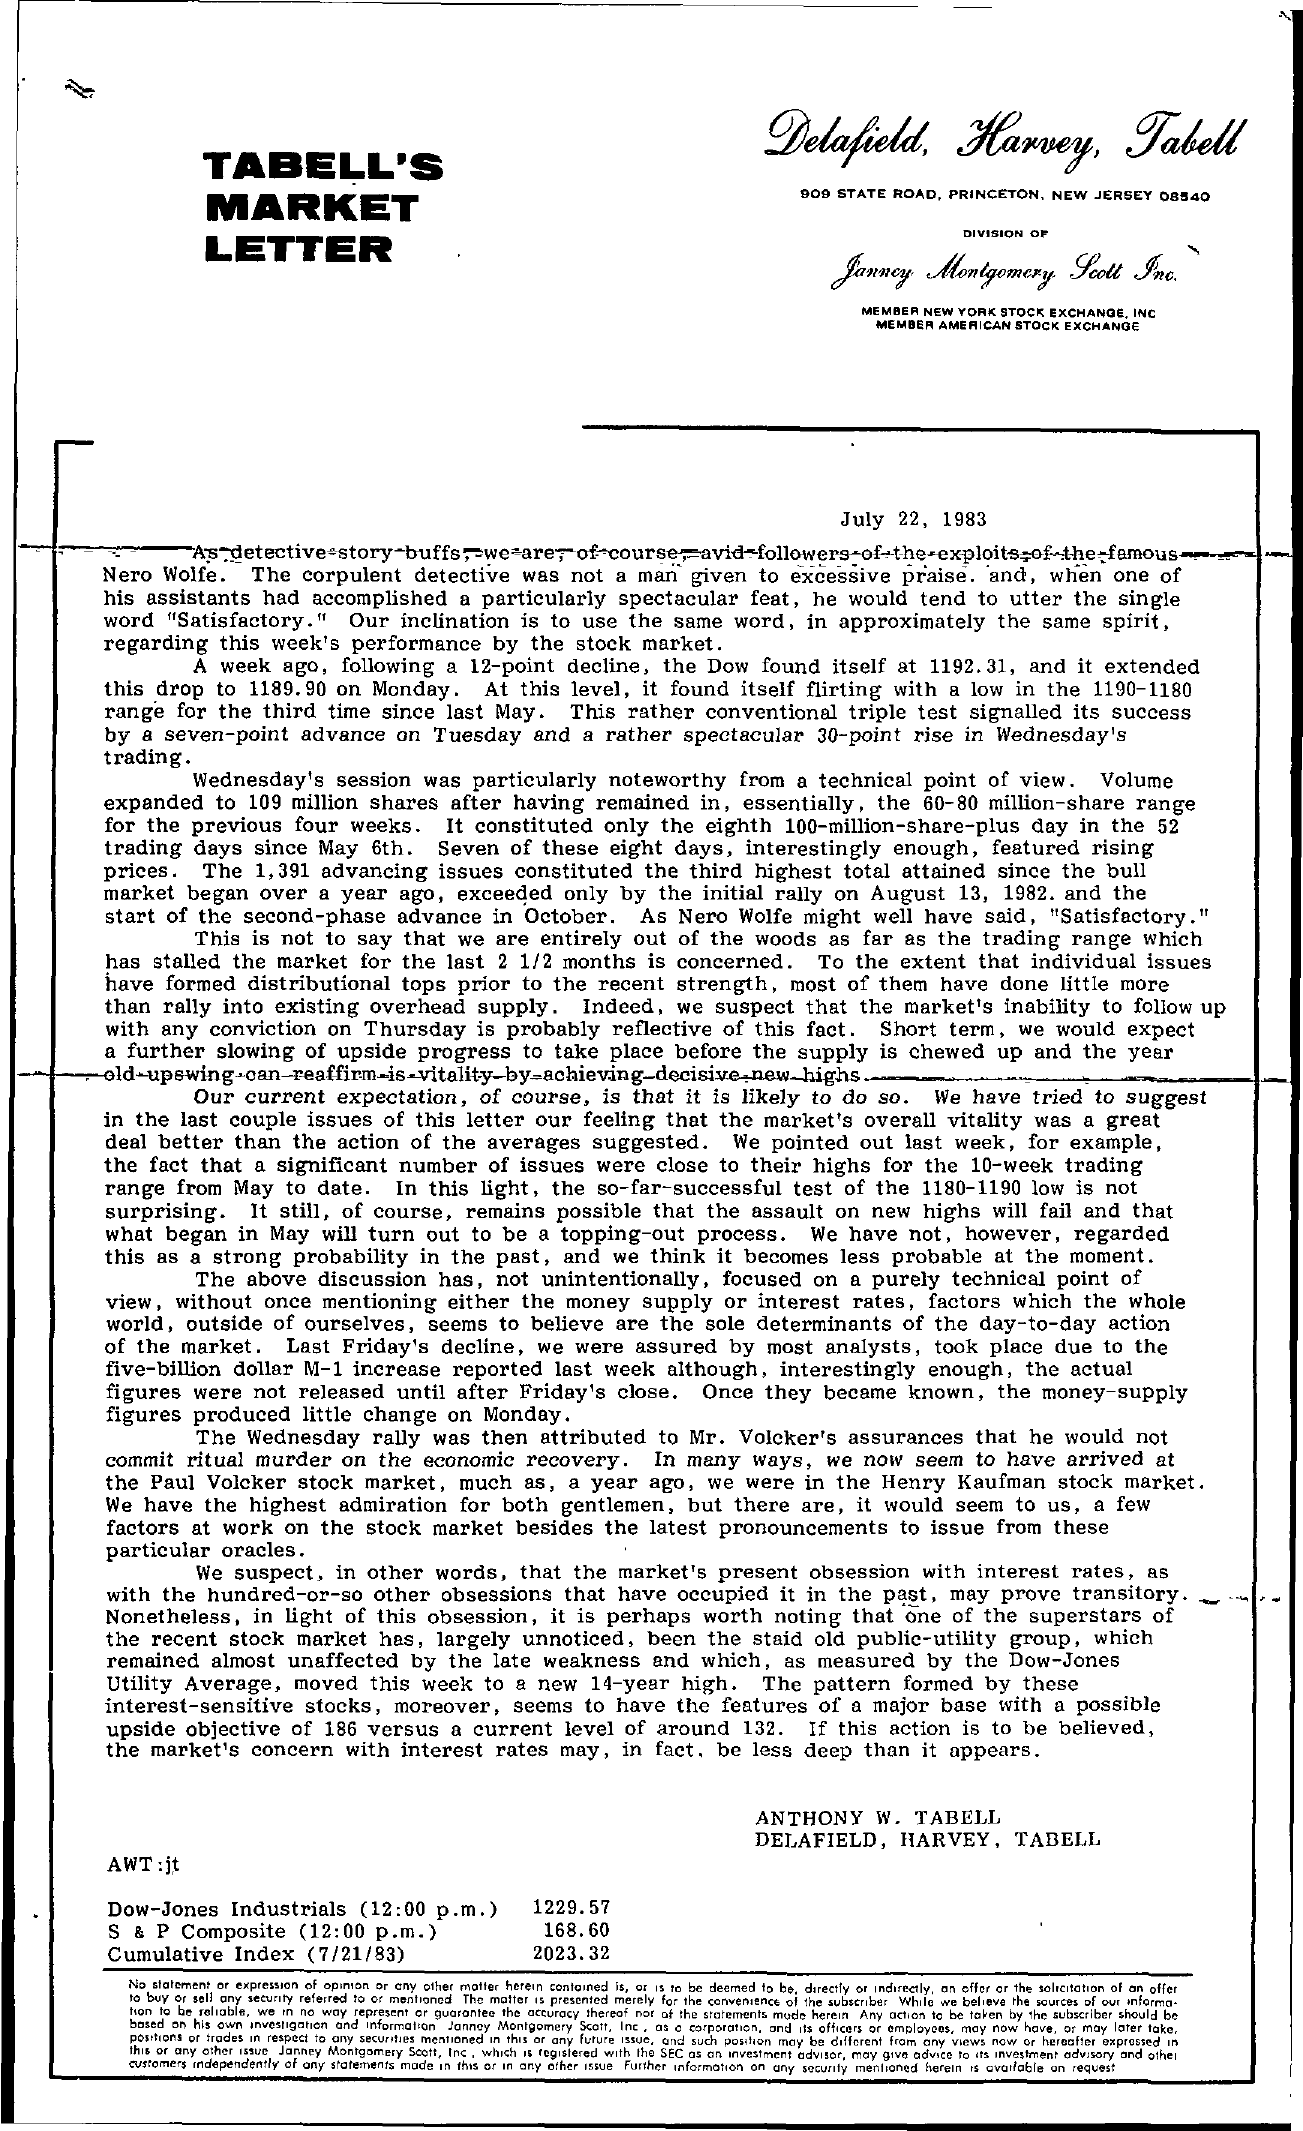 Tabell's Market Letter - July 22, 1983